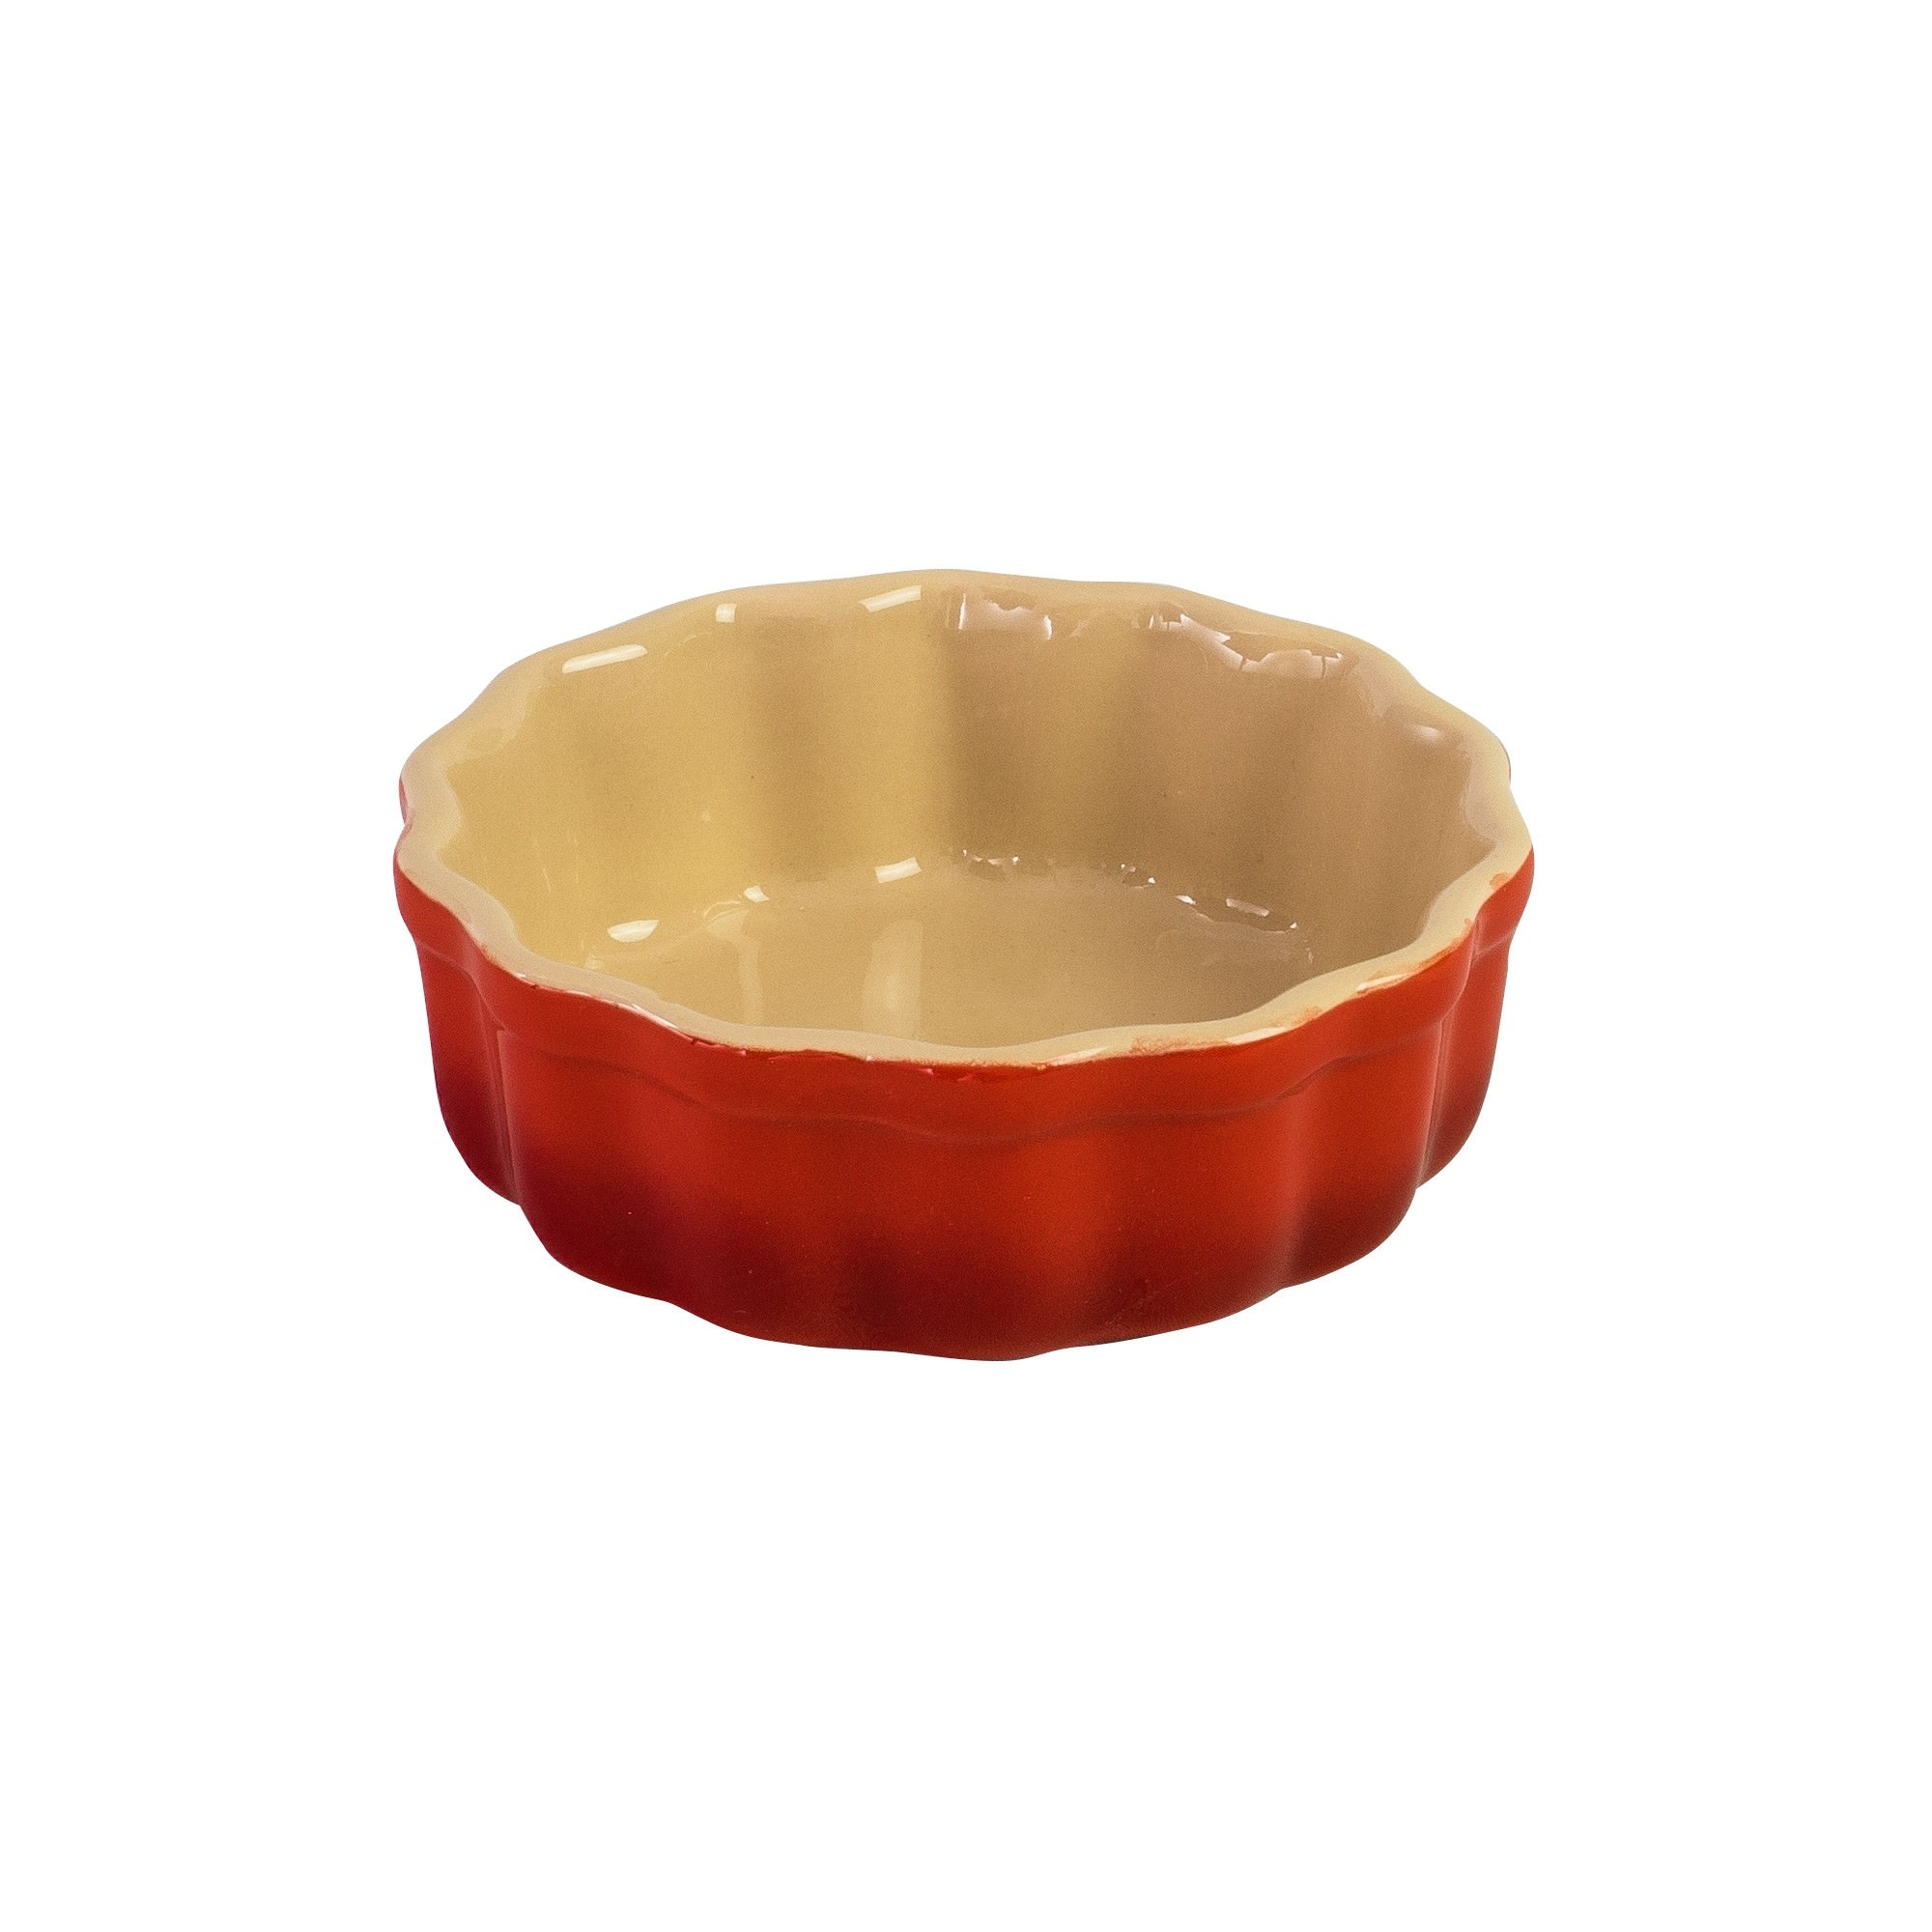 Chasseur La Cuisson 12cm Round Flan Dish - Red